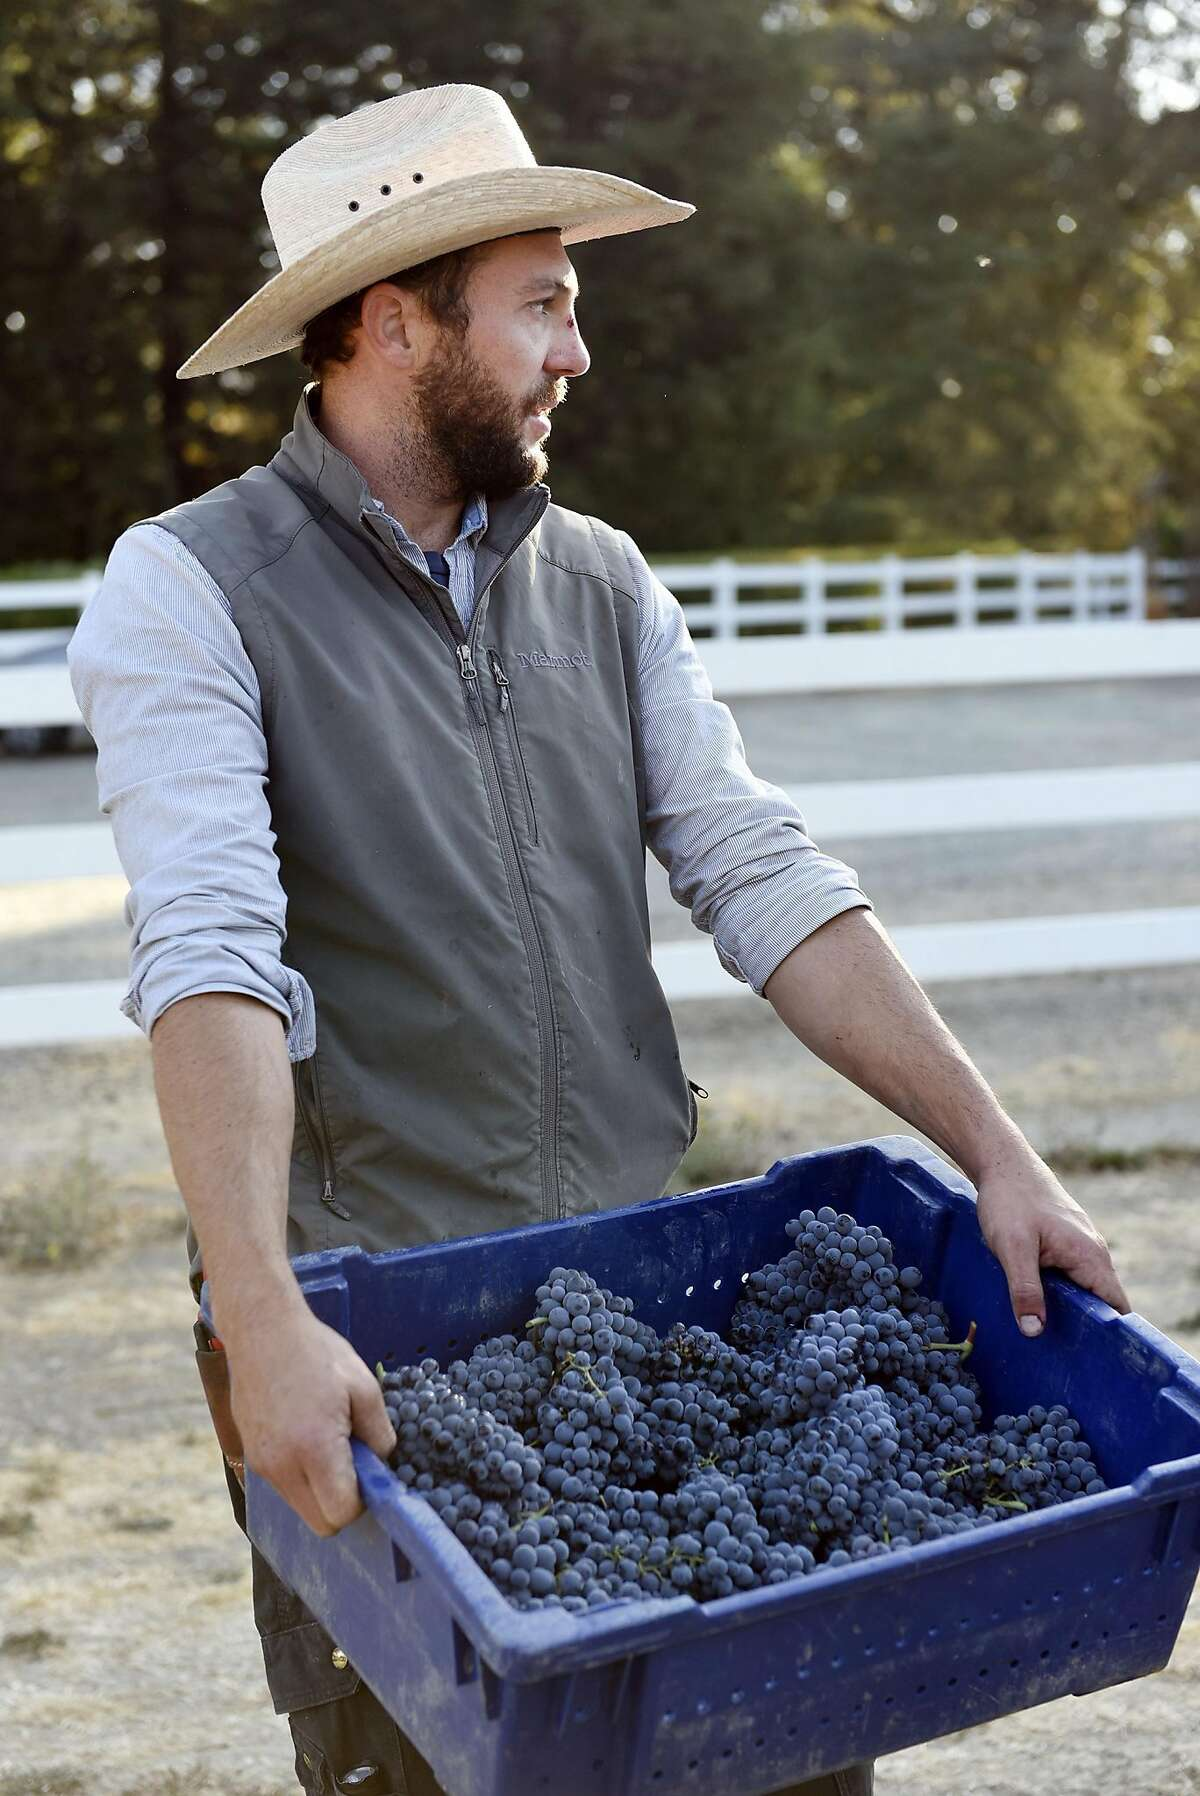 Winemaker Clayton Kirchhoff carries a basket of freshly picked carignane grapes during a harvest at the Kirchhoff family's vineyard in Clarksburg, CA Thursday, September 10, 2016.